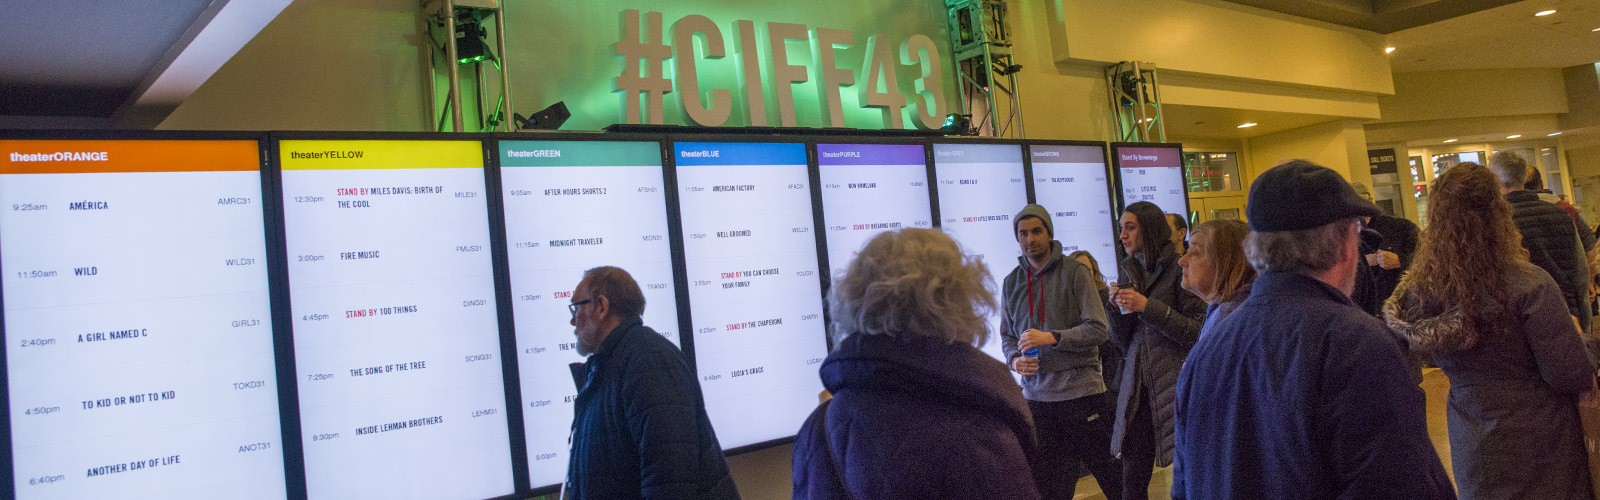 2019 Cleveland International Film Festival - CIFF 43 <span class=&apos;image-credits&apos;>Bob Perkoski</span>